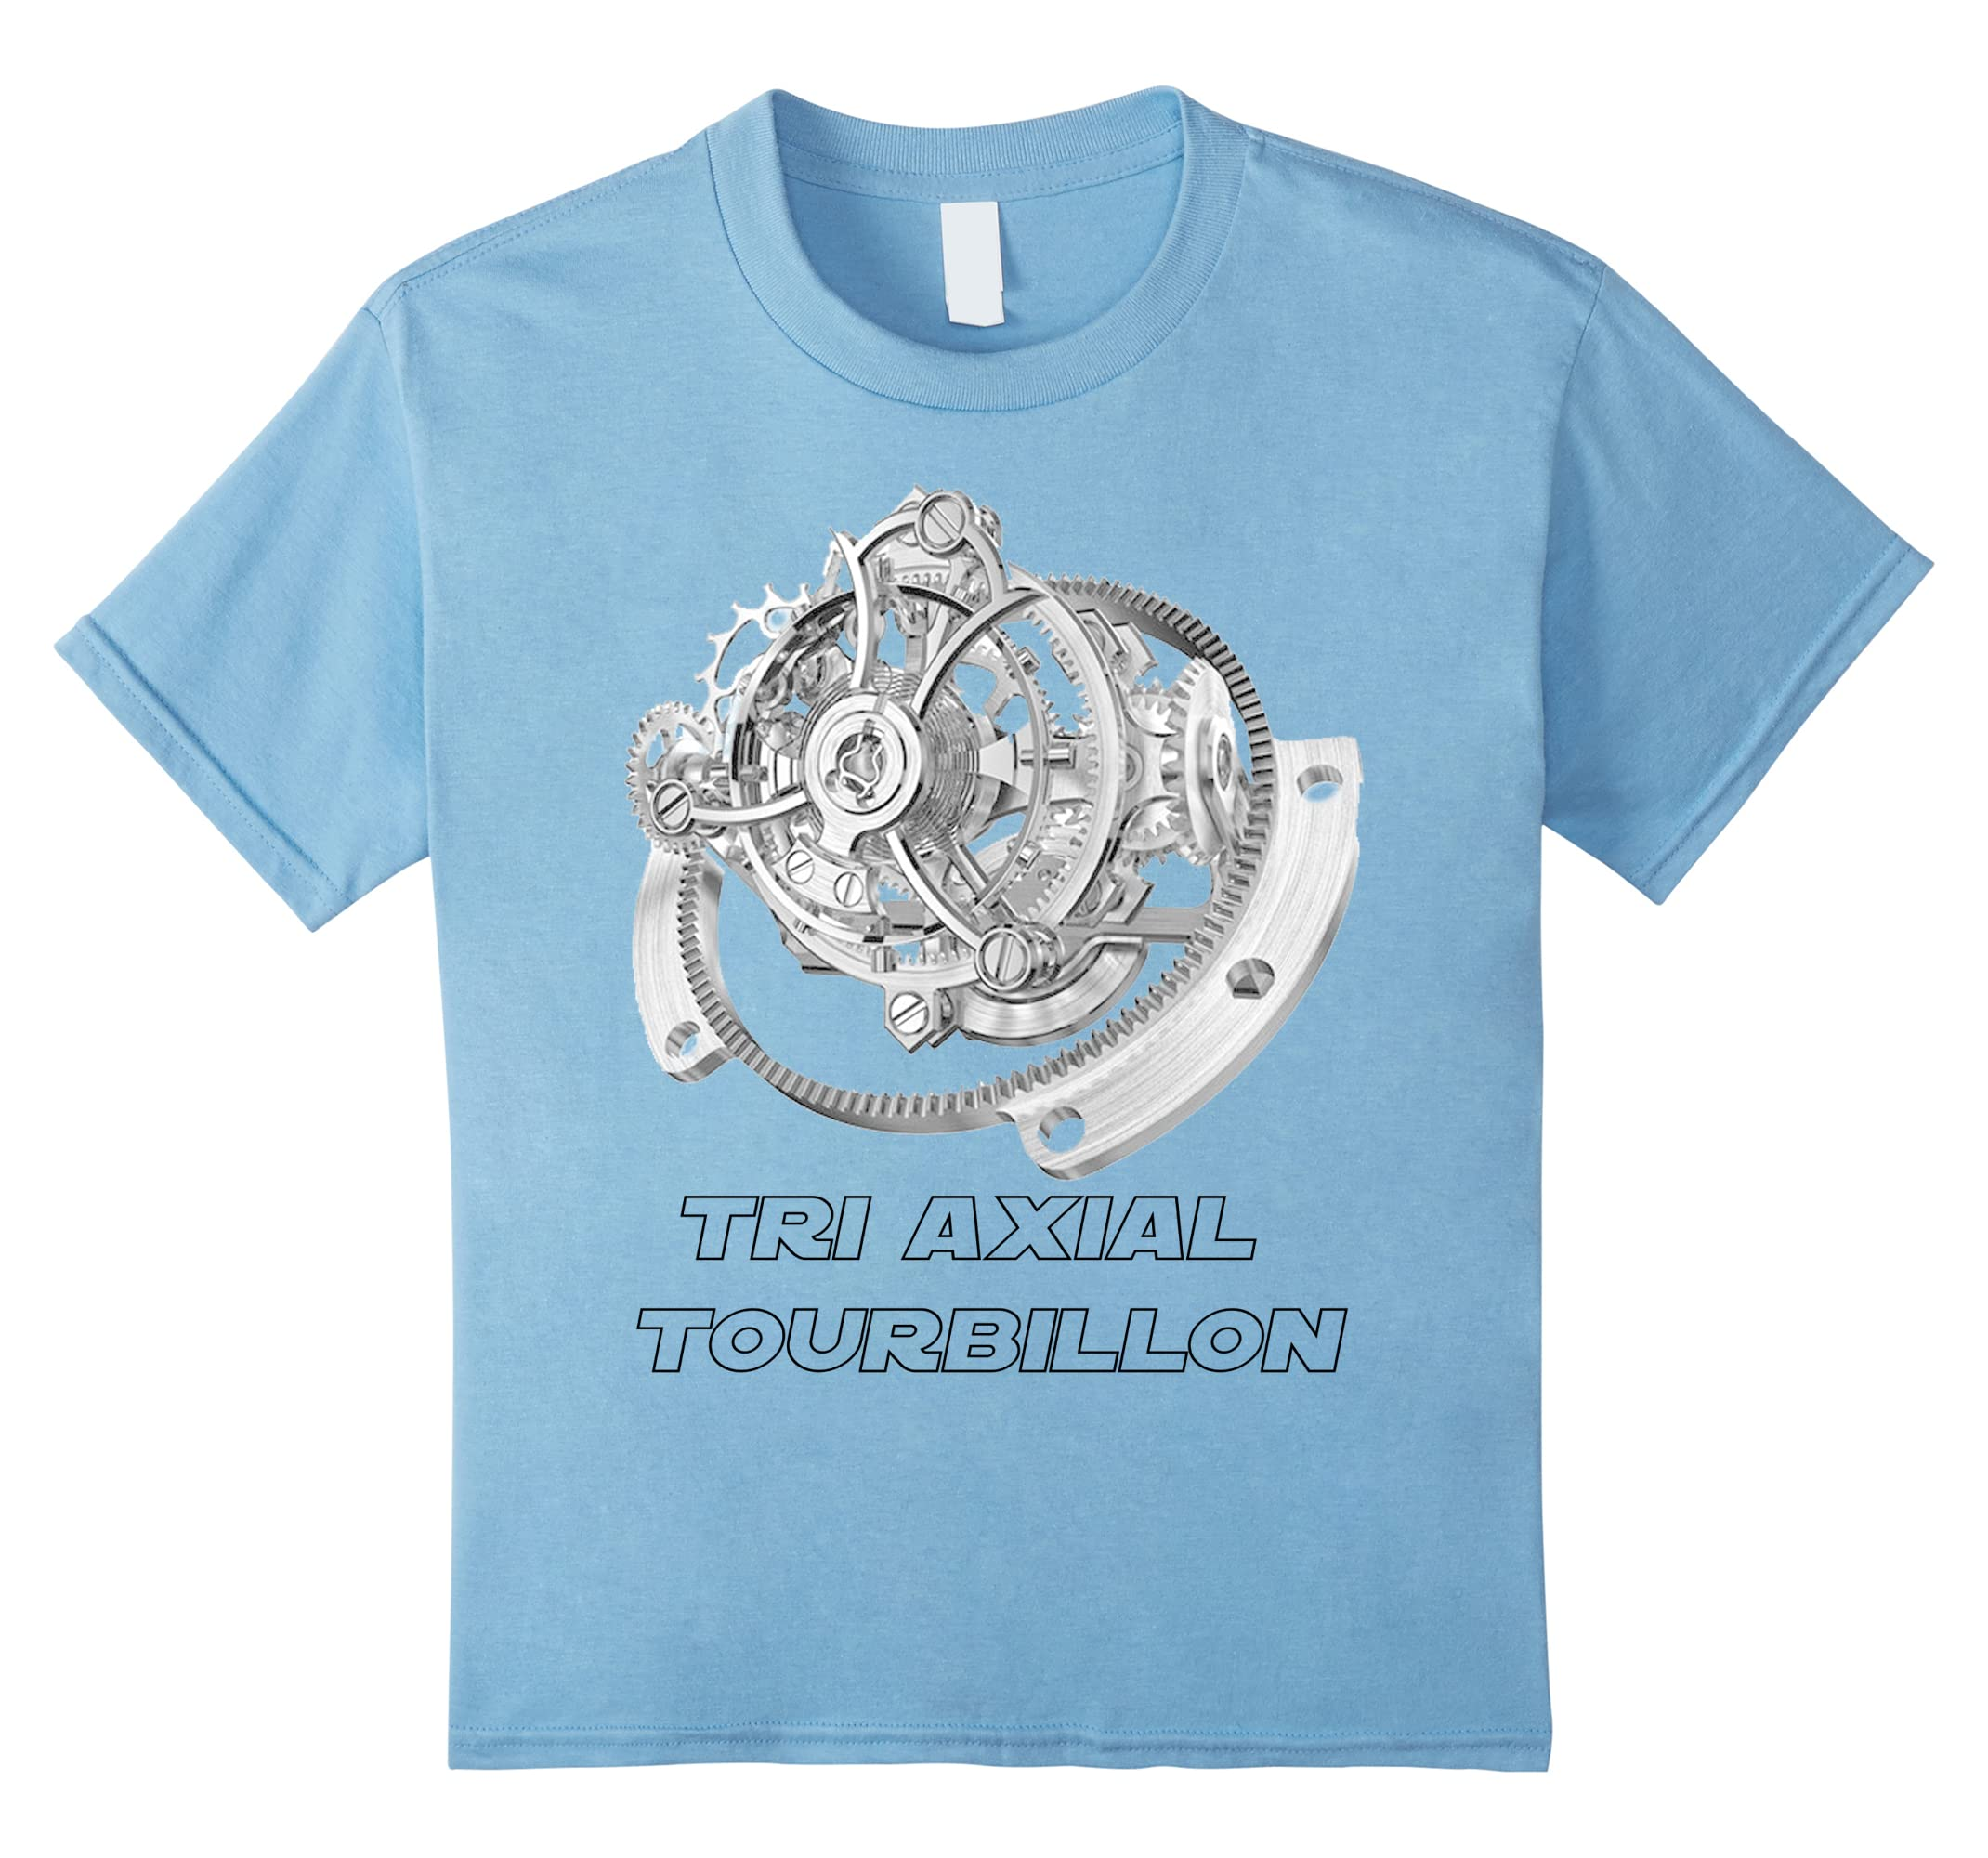 Watch Movement Tourbillon Watchmaker T shirt-Tovacu